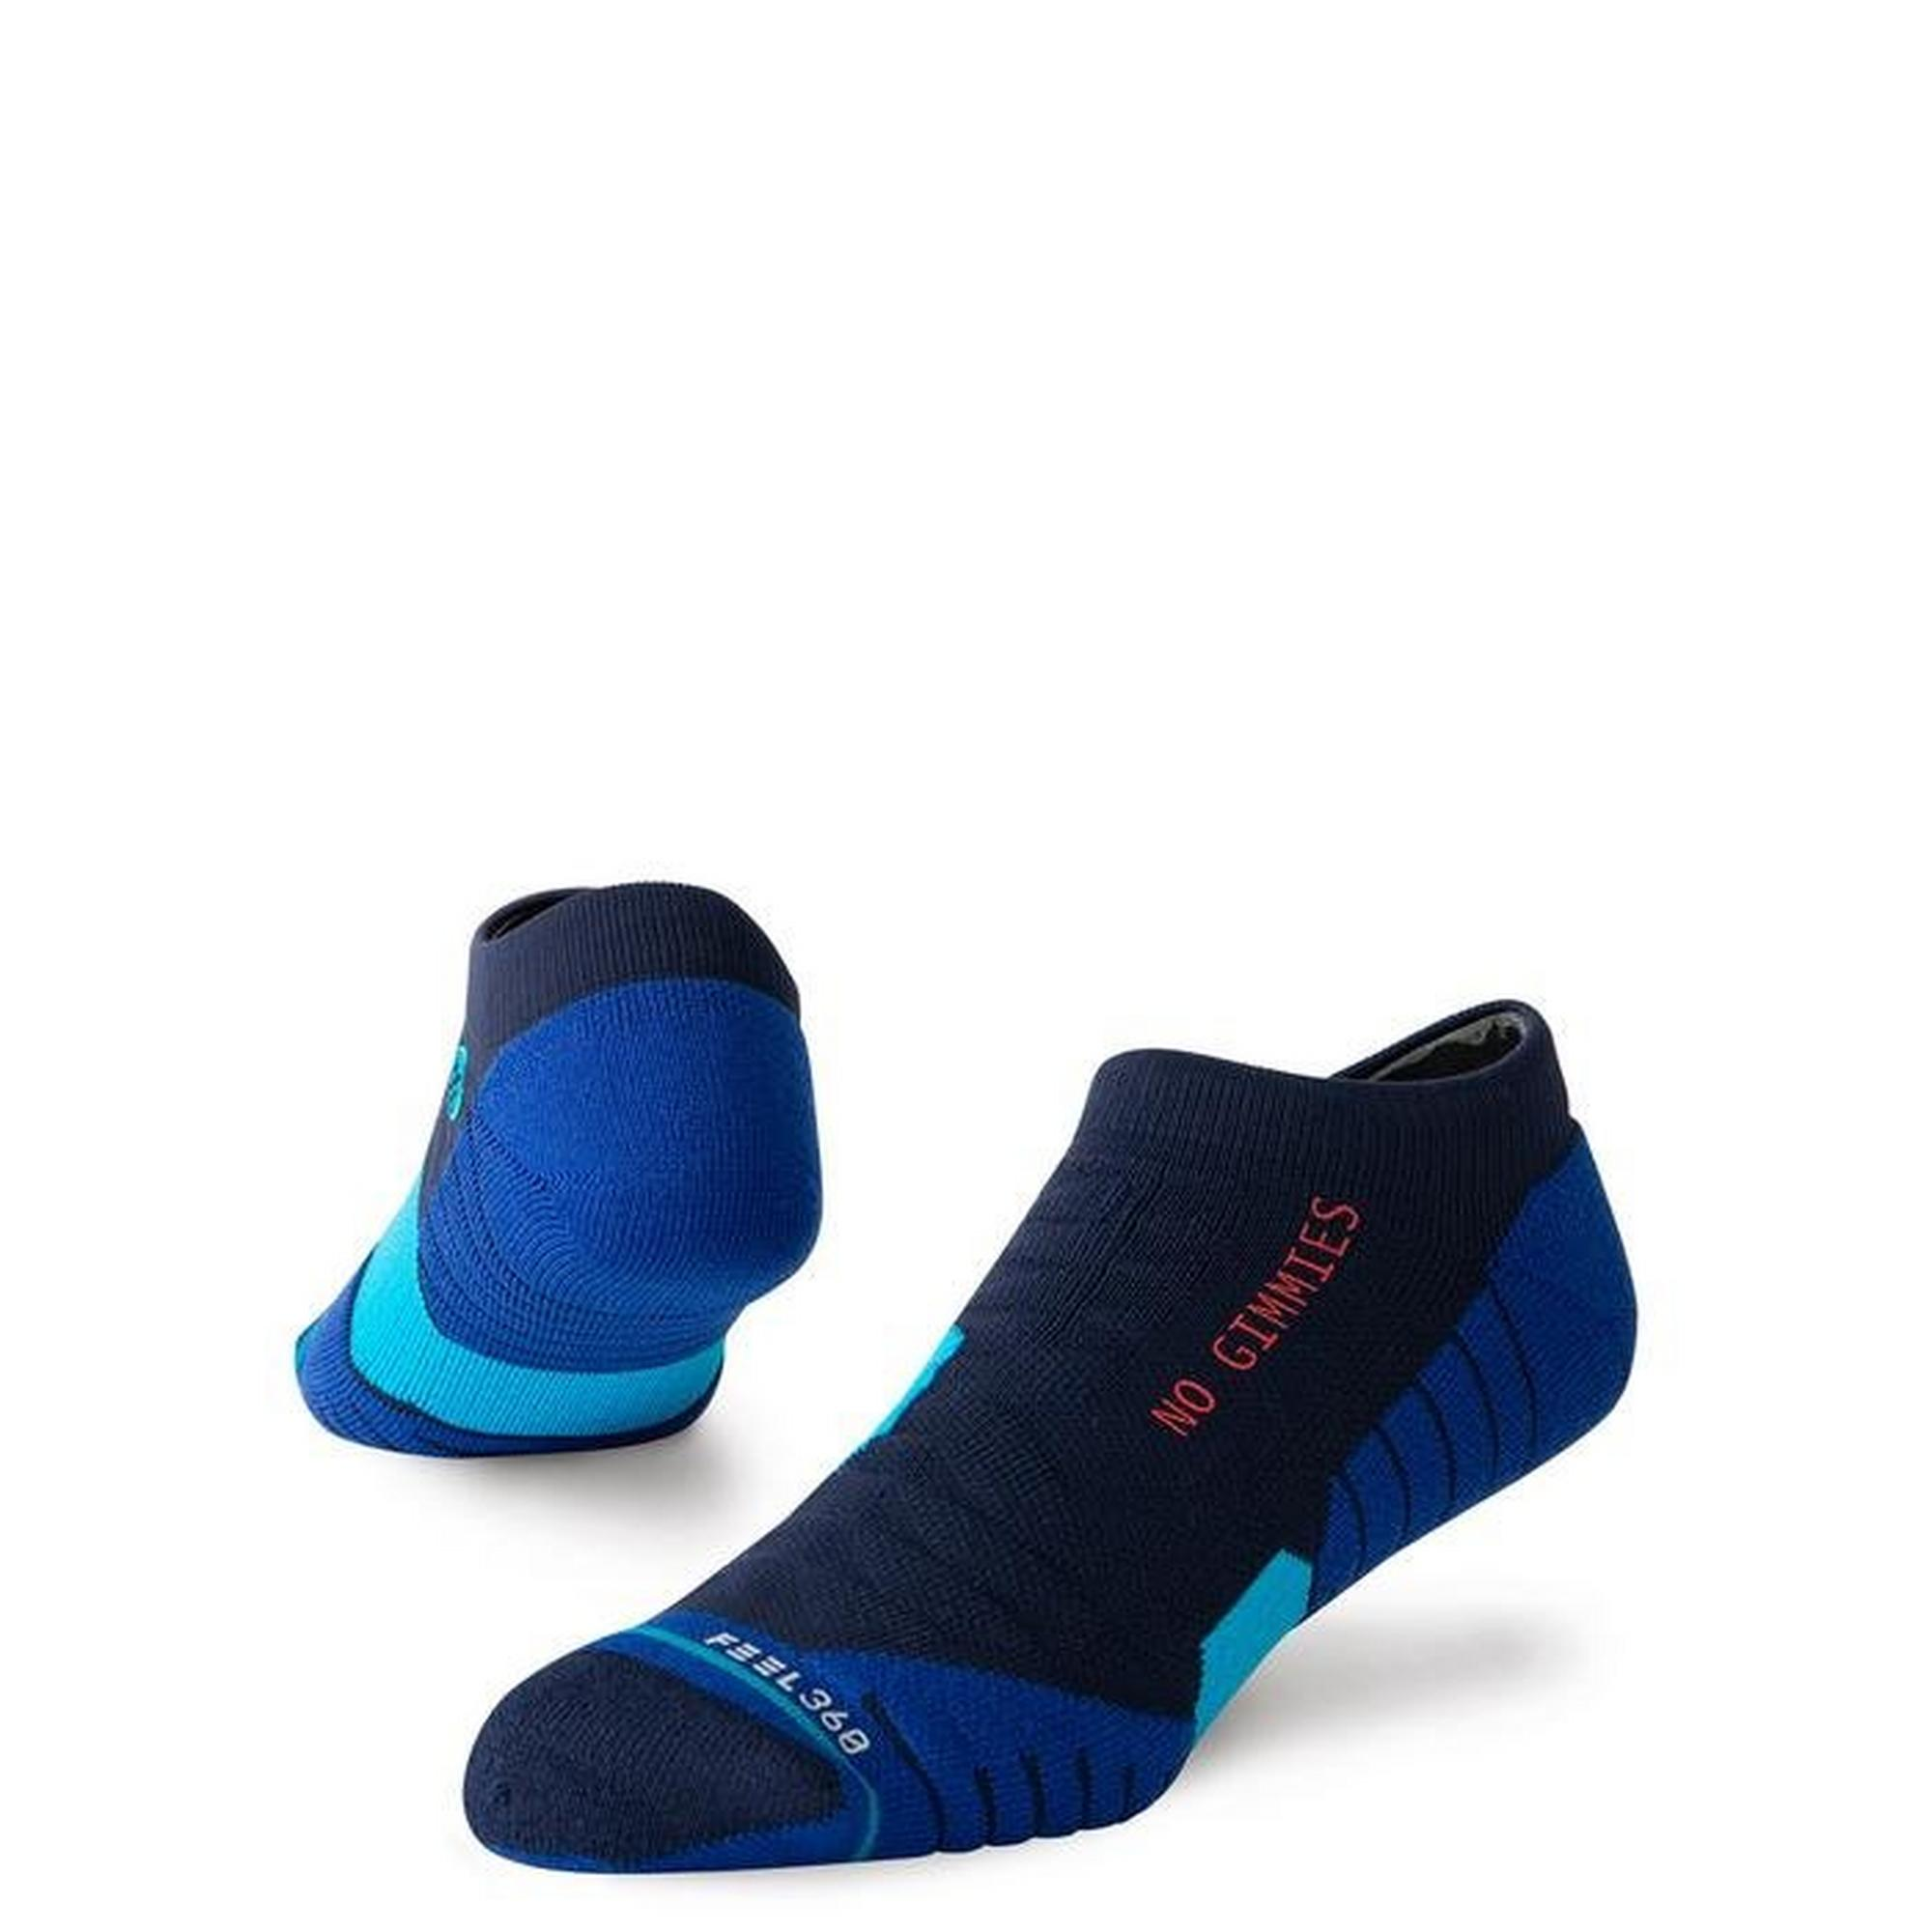 Men's No Gimmies Low Ankle Sock